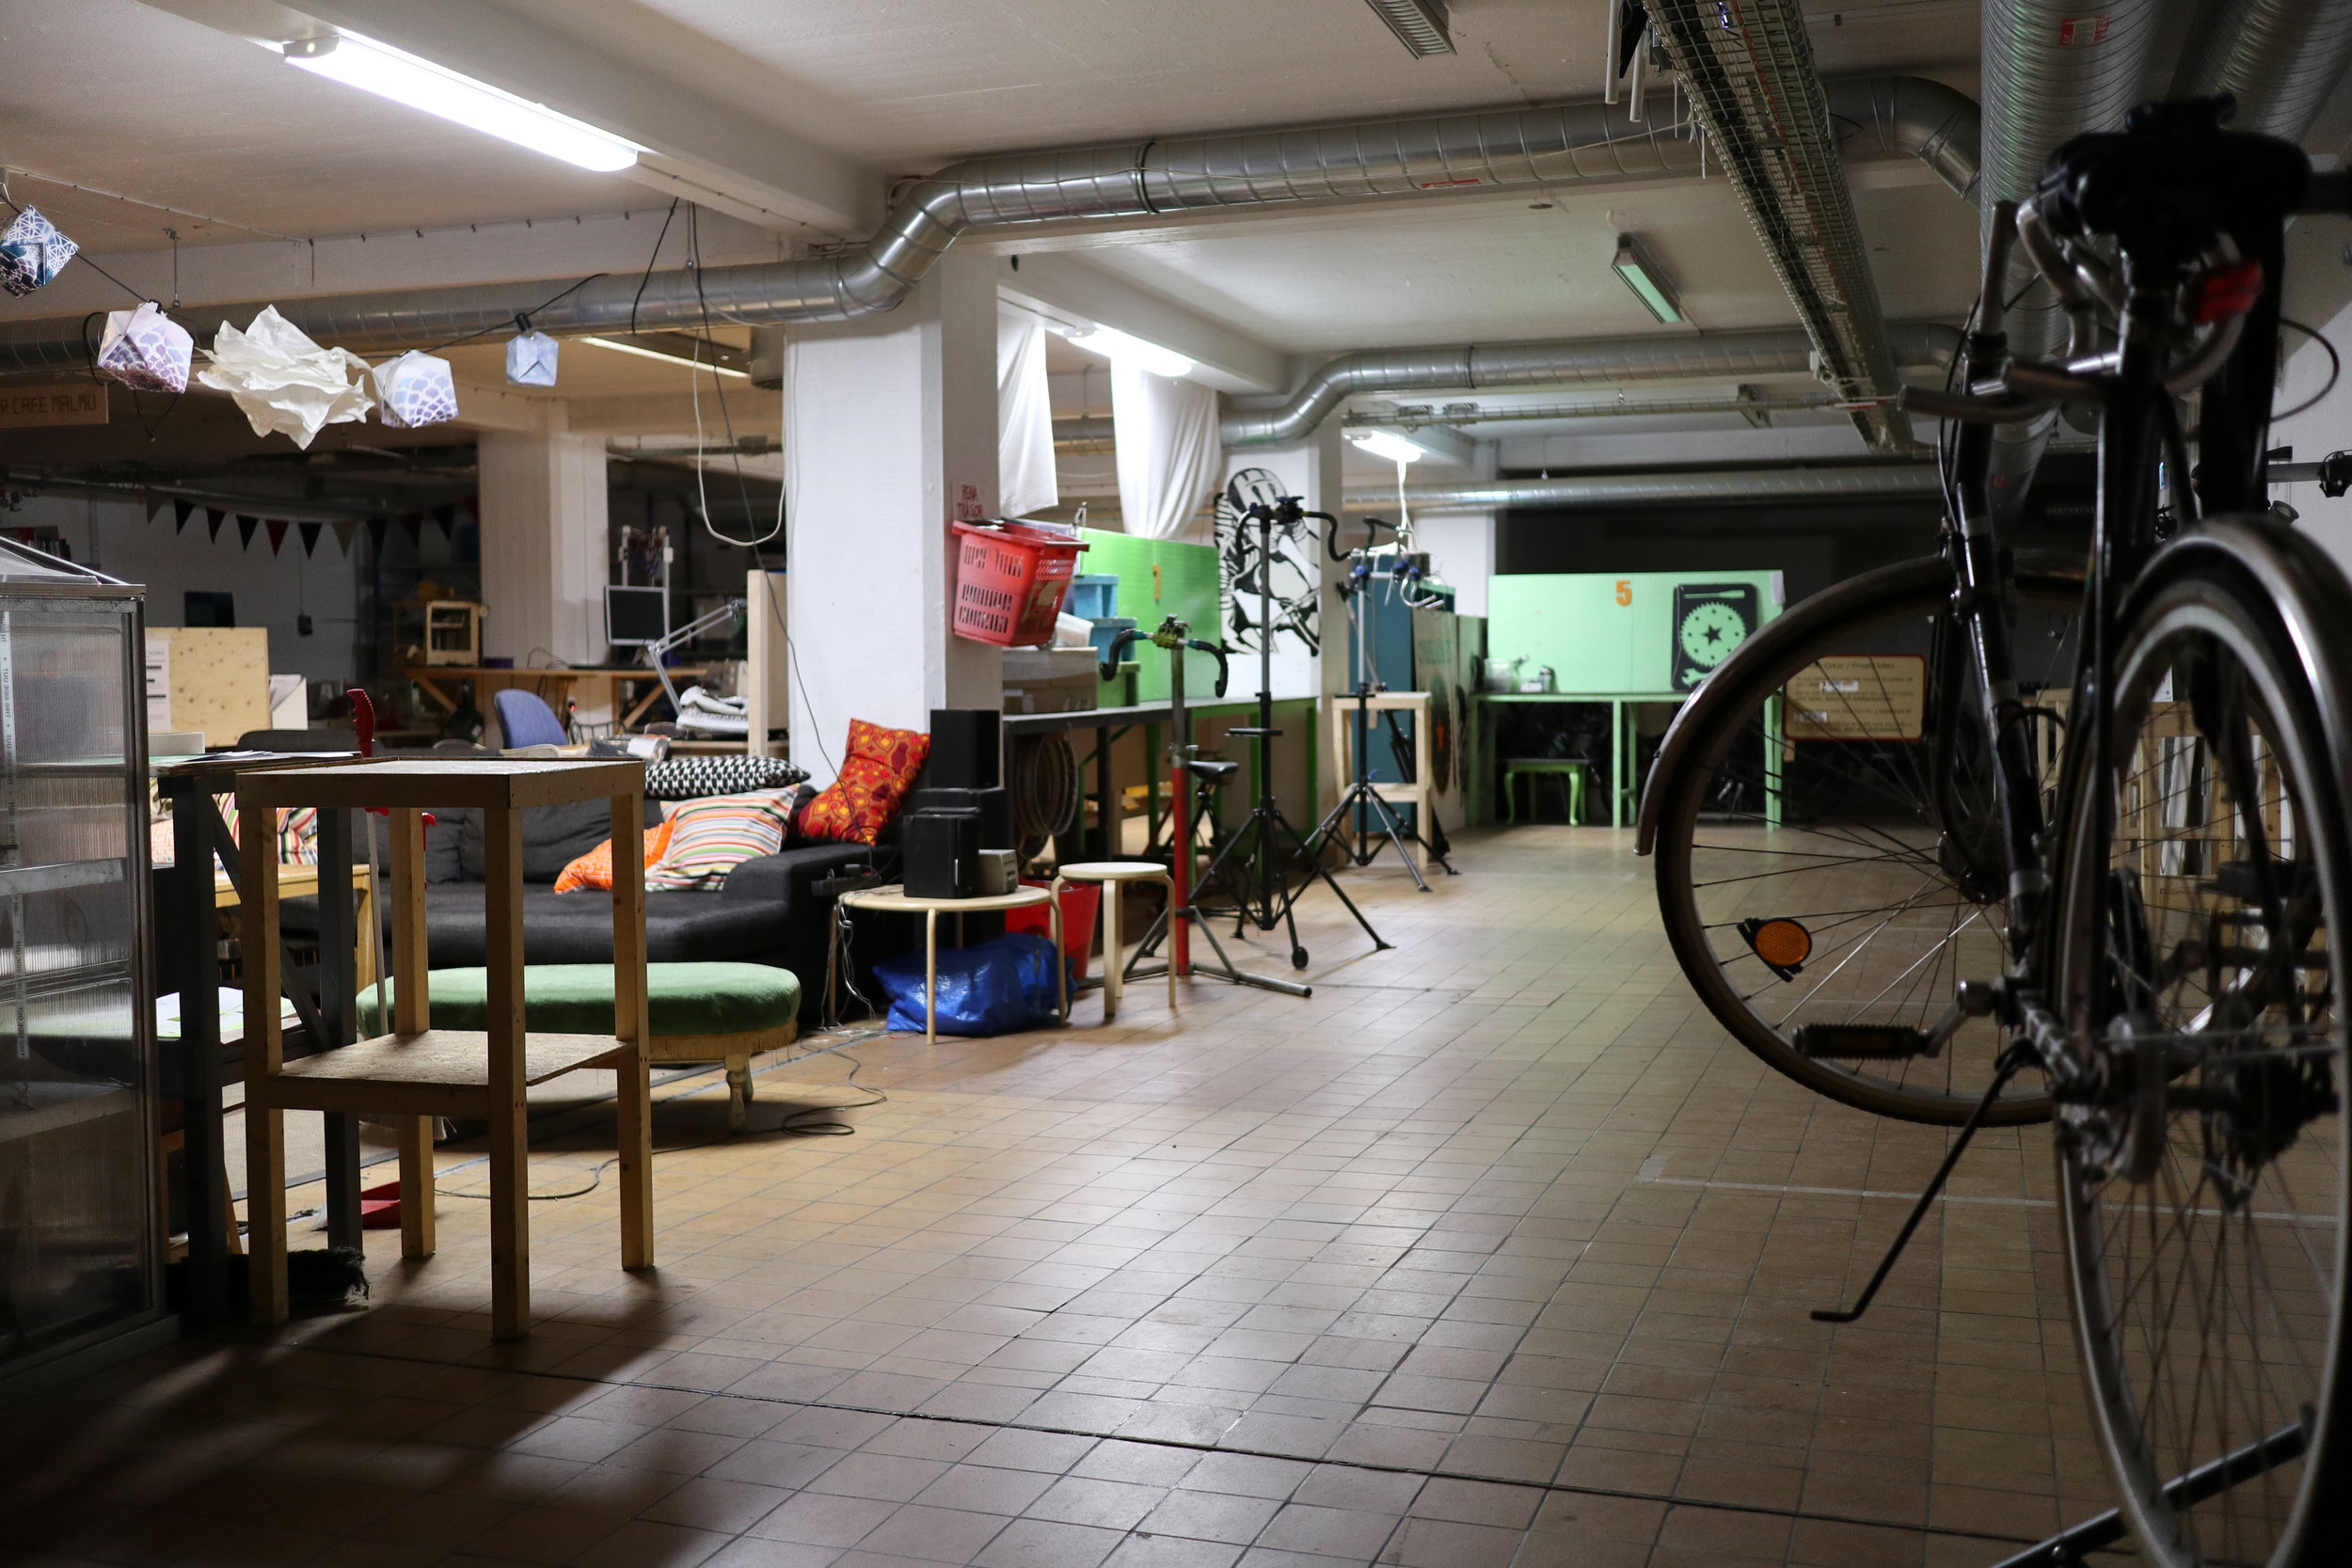 Open Verkstaden - 12.00 - 16.00 (Drop-In)Drop by the basement to fix your bike at Cykelköket or create something new at Malmö Makerspace.